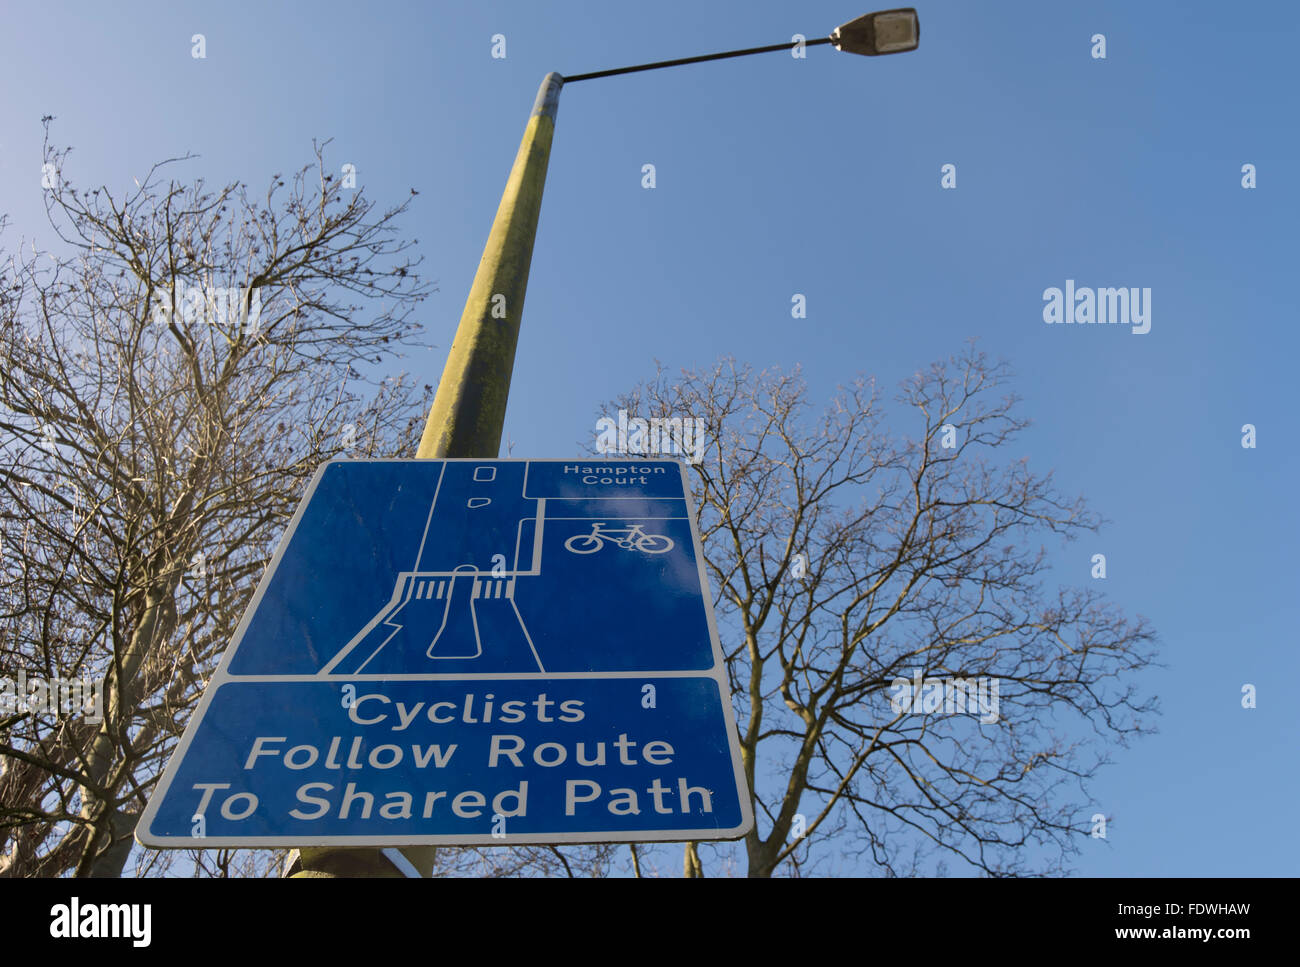 cyclists follow route to shared path sign, kingston upon thames, surrey, england - Stock Image